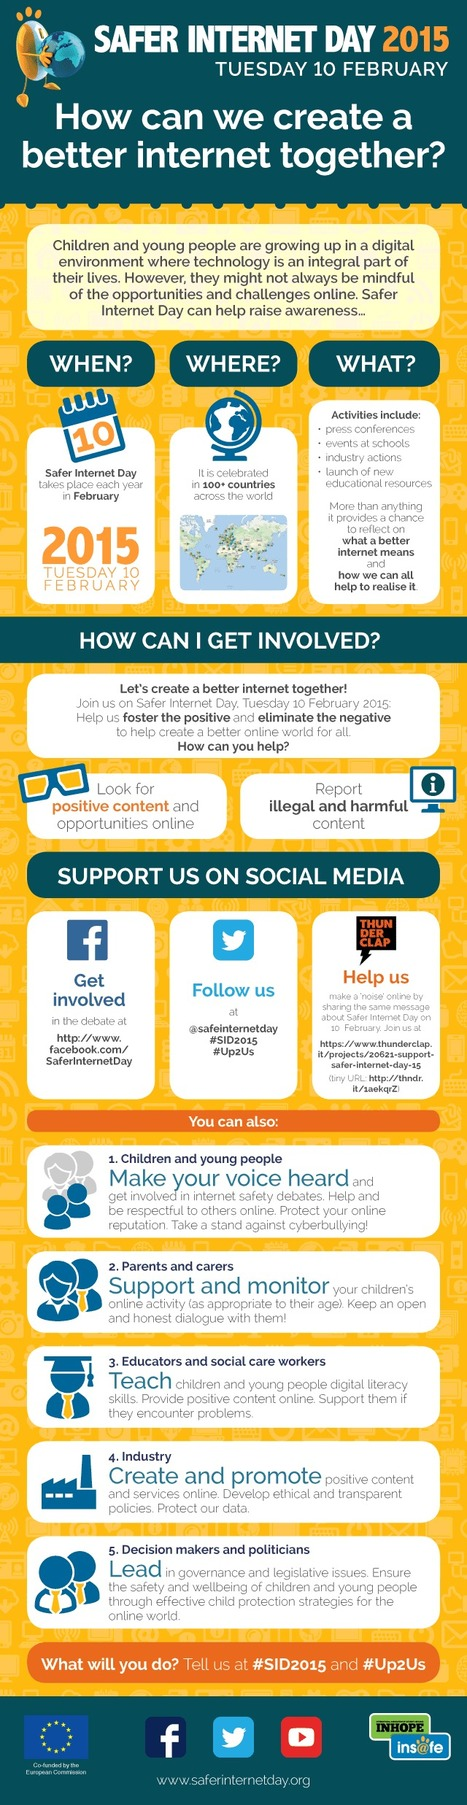 How can WE create a BETTER internet together!? | Infographic | Technology in the Classroom | Scoop.it